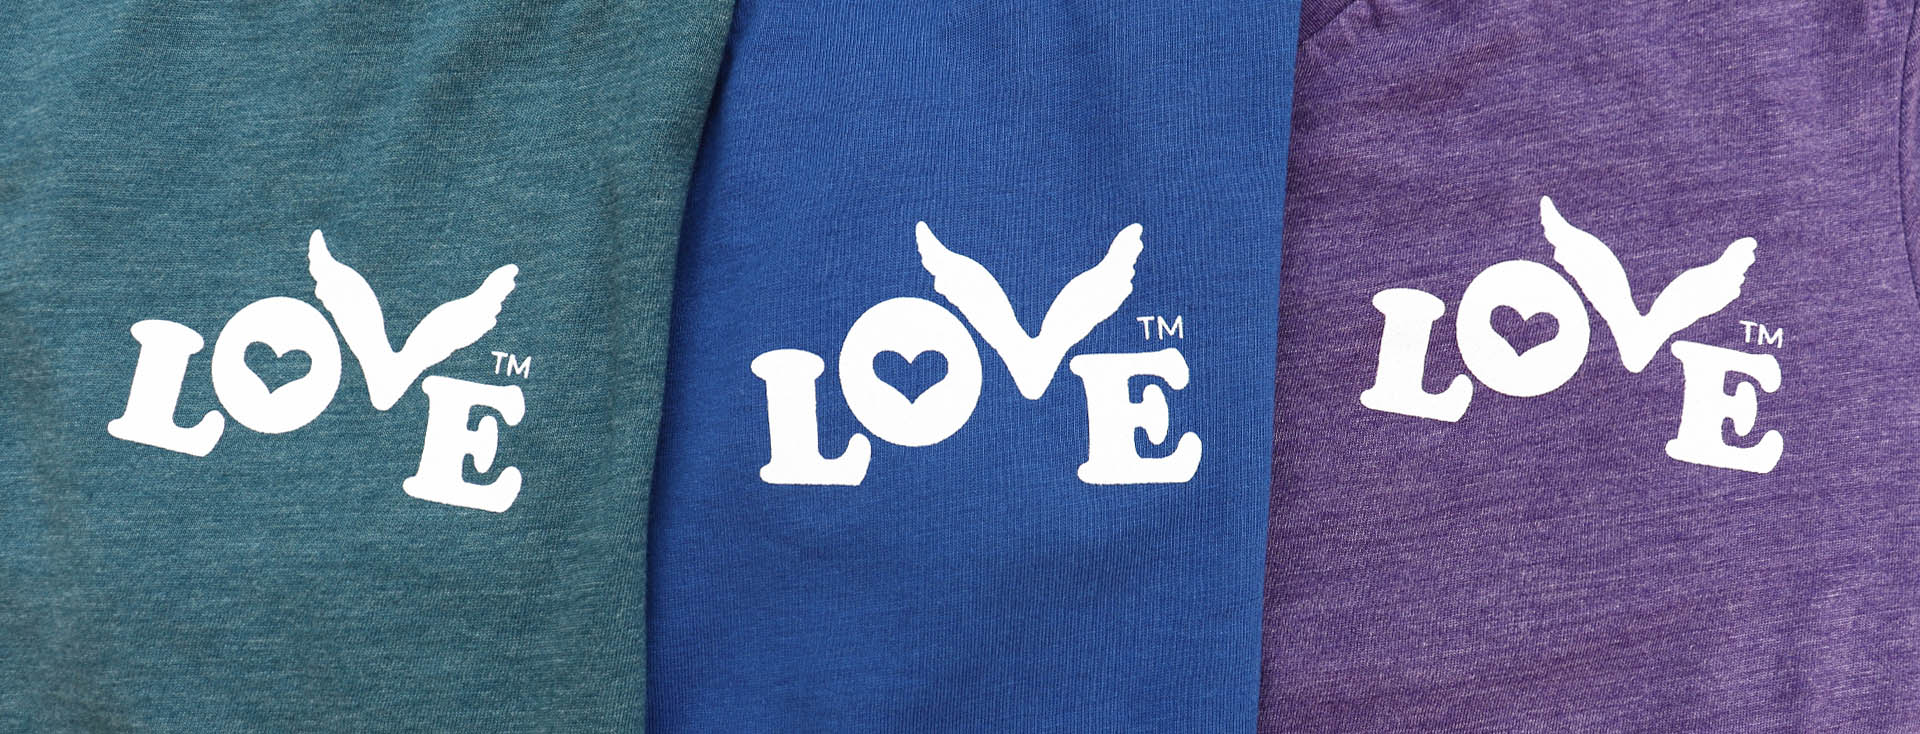 New Colors & Styles for Stand For Love T-Shirt